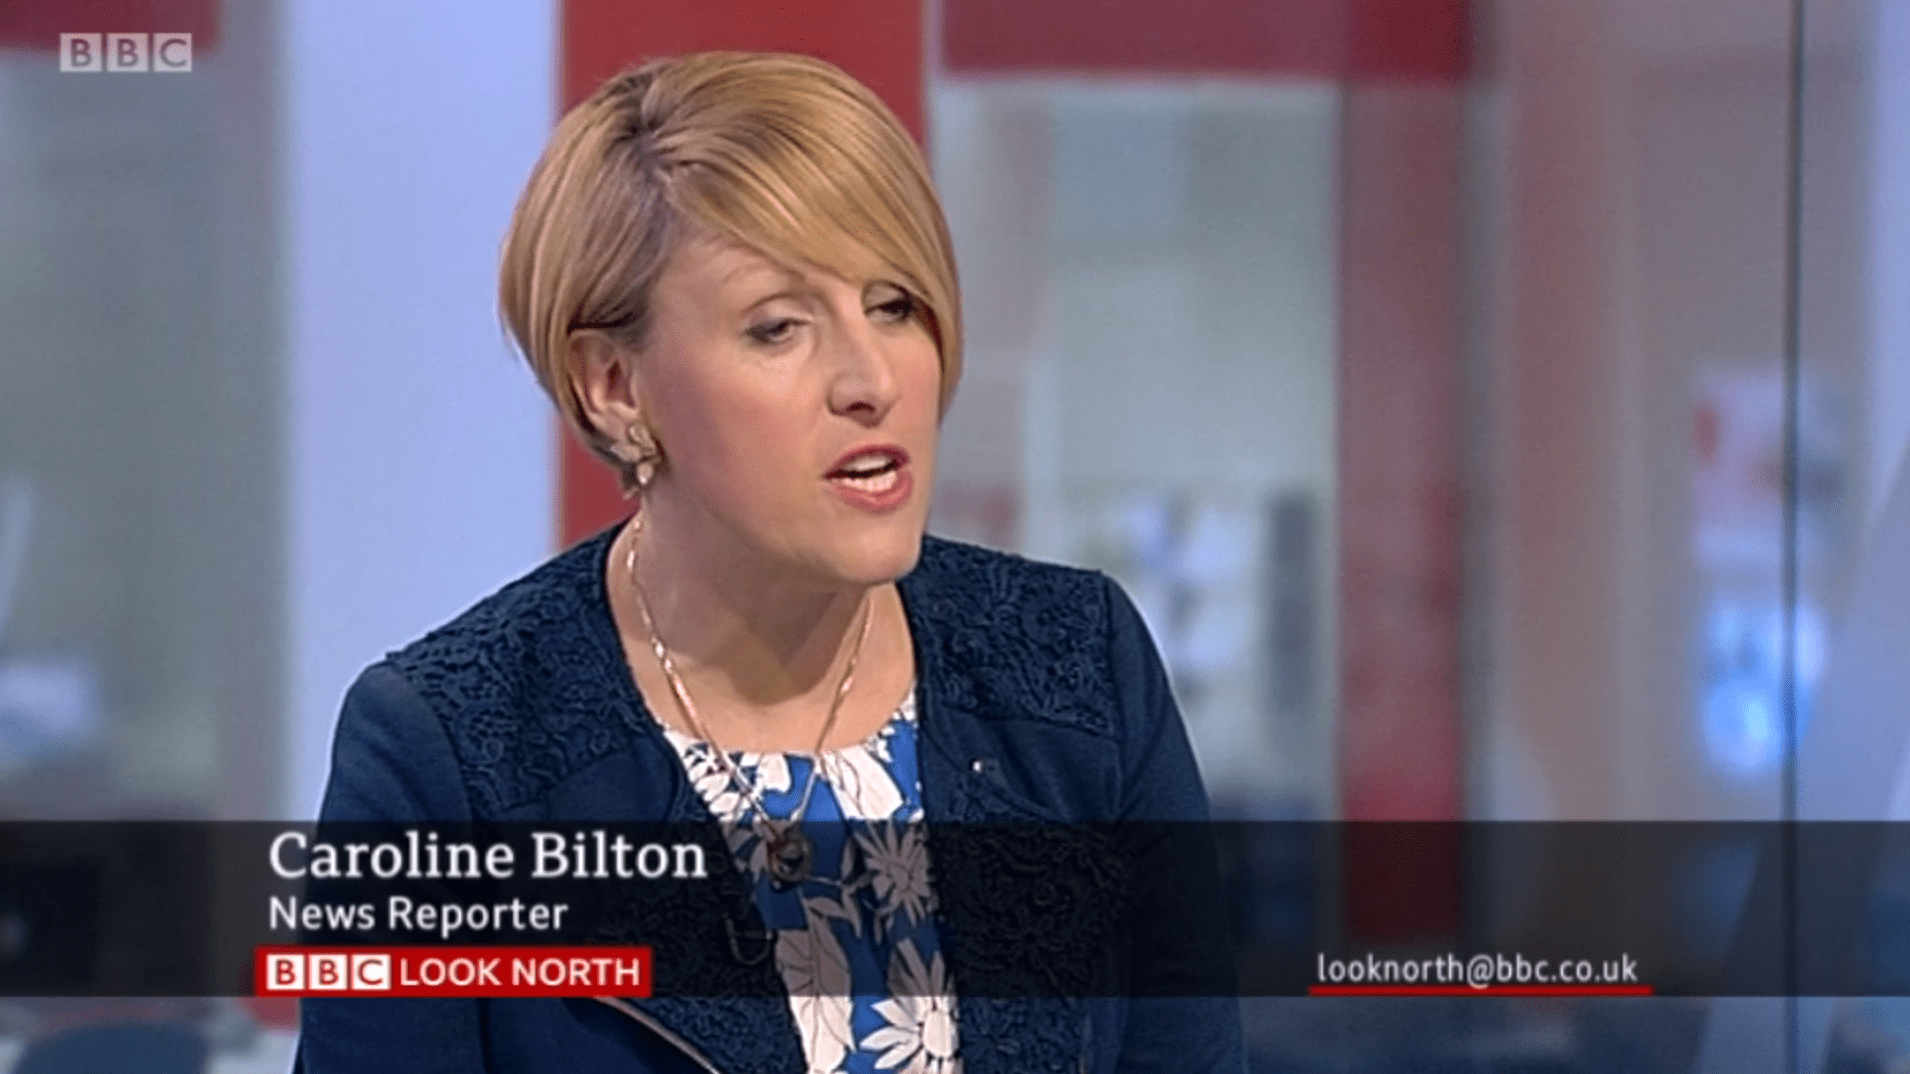 PICTURED: BBC Look North studio presentation and lower-third. Reporter: Caroline Bilton.